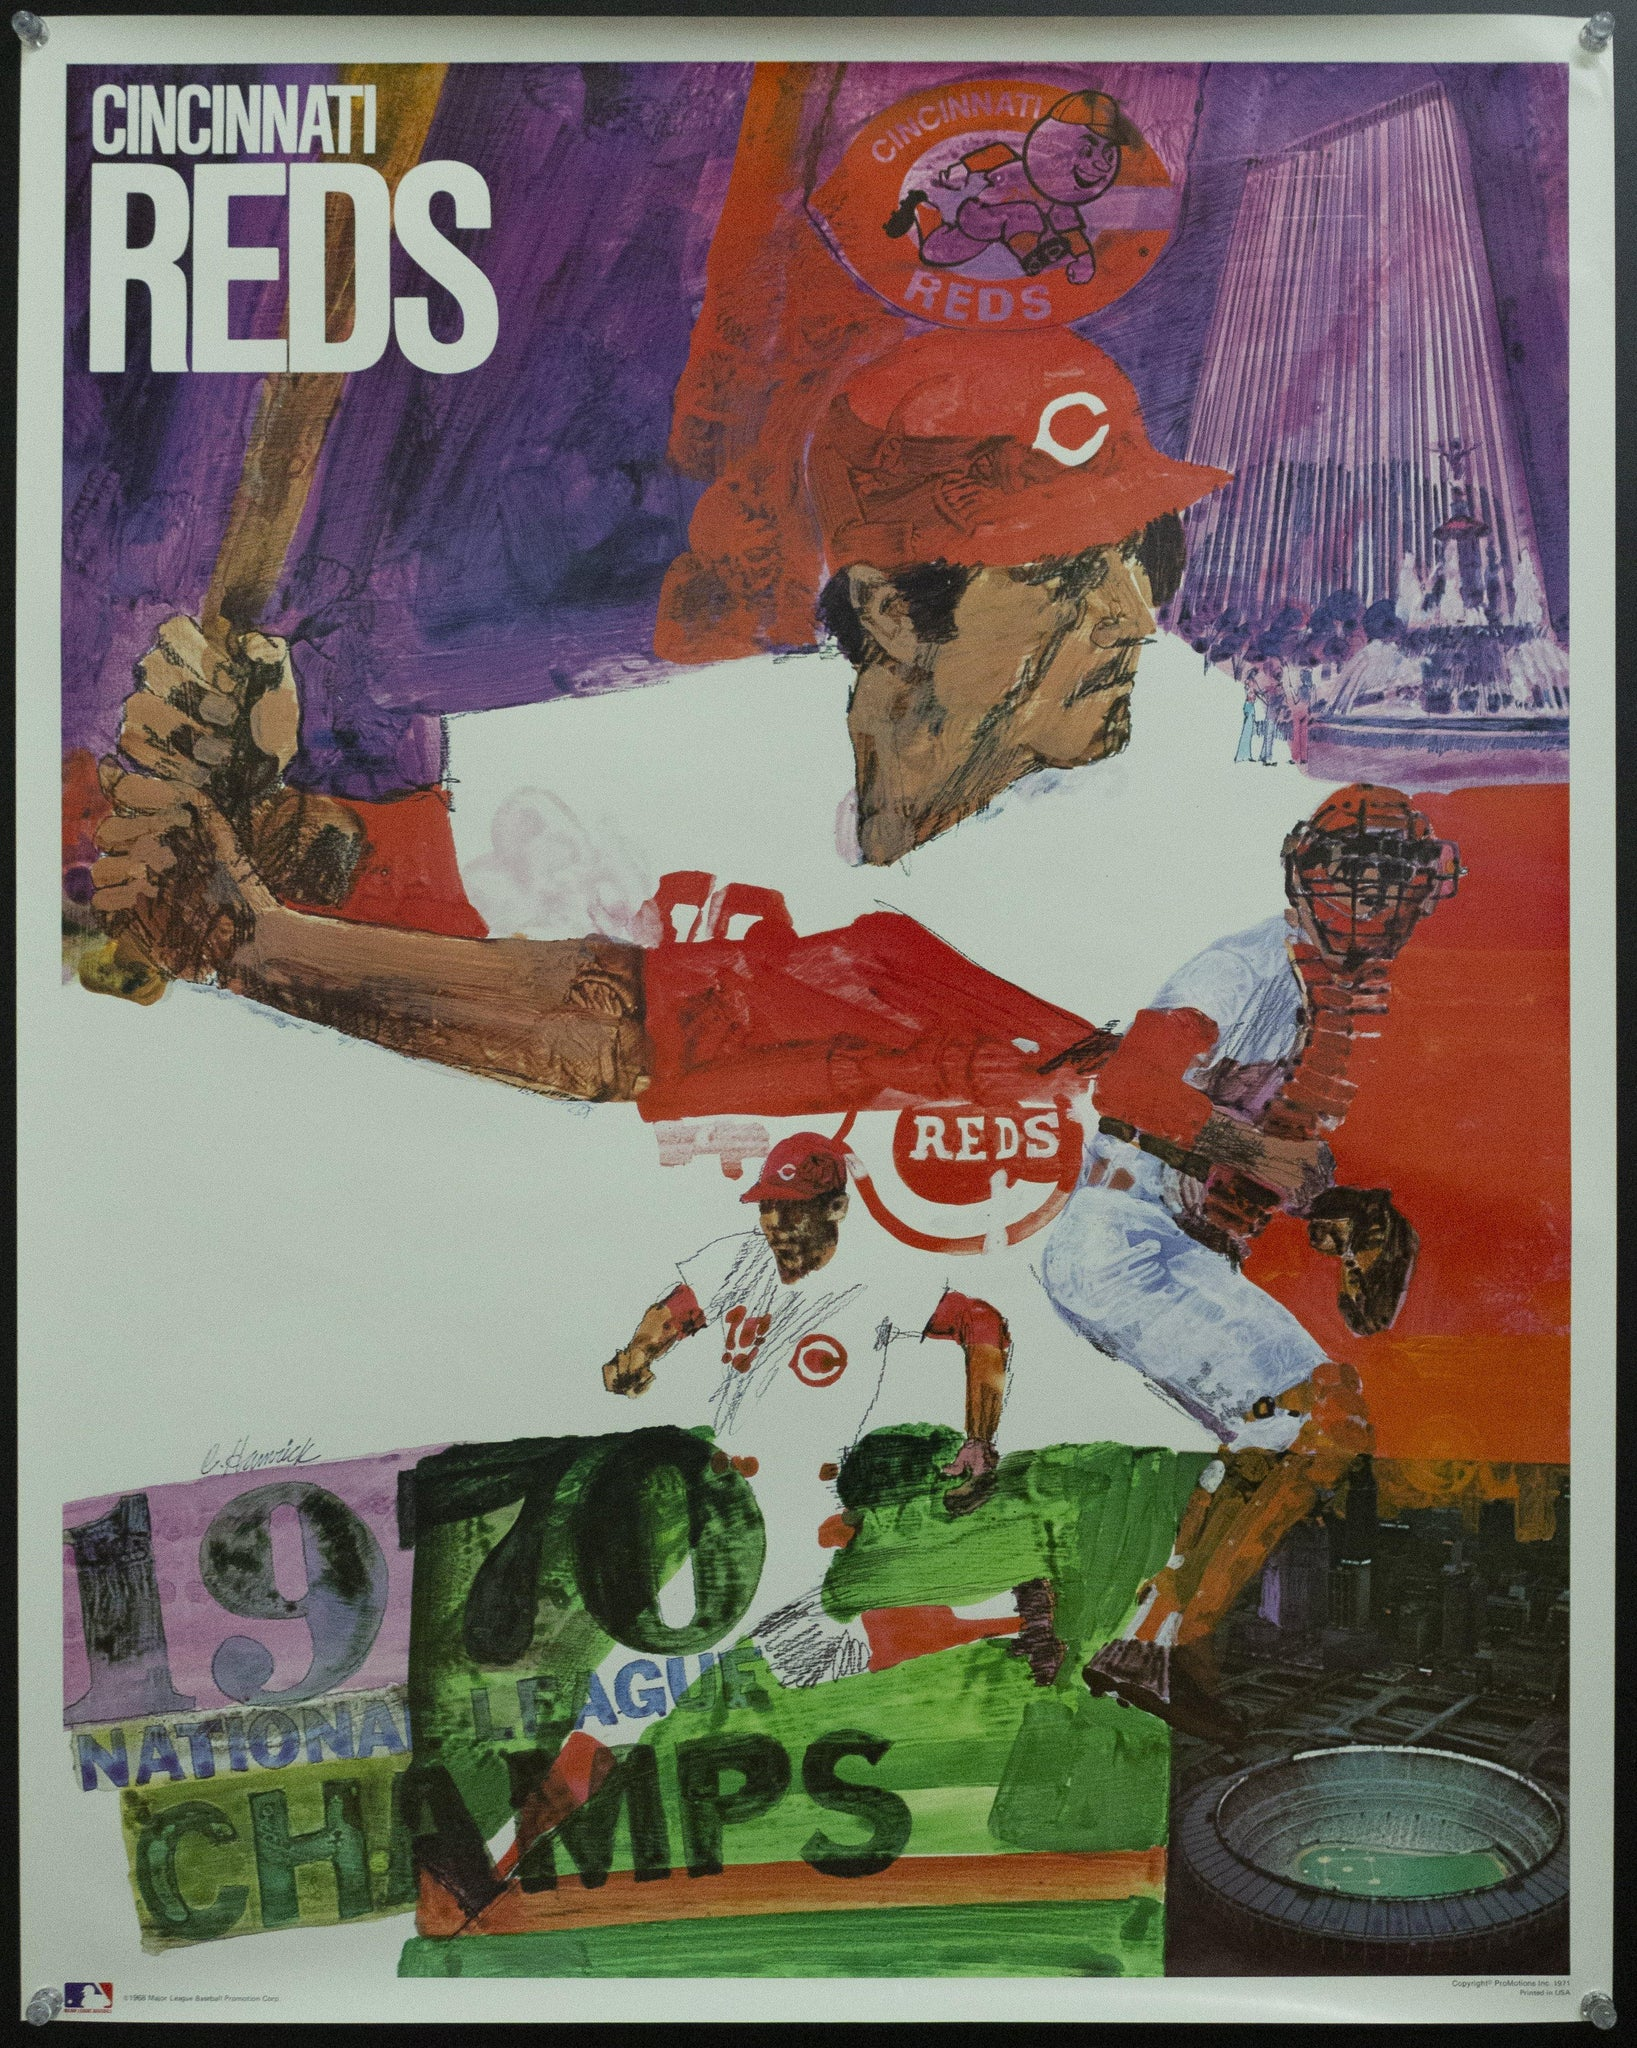 1971 Cincinnati Reds by Chuck Hamrick Major League Baseball MLB 1968